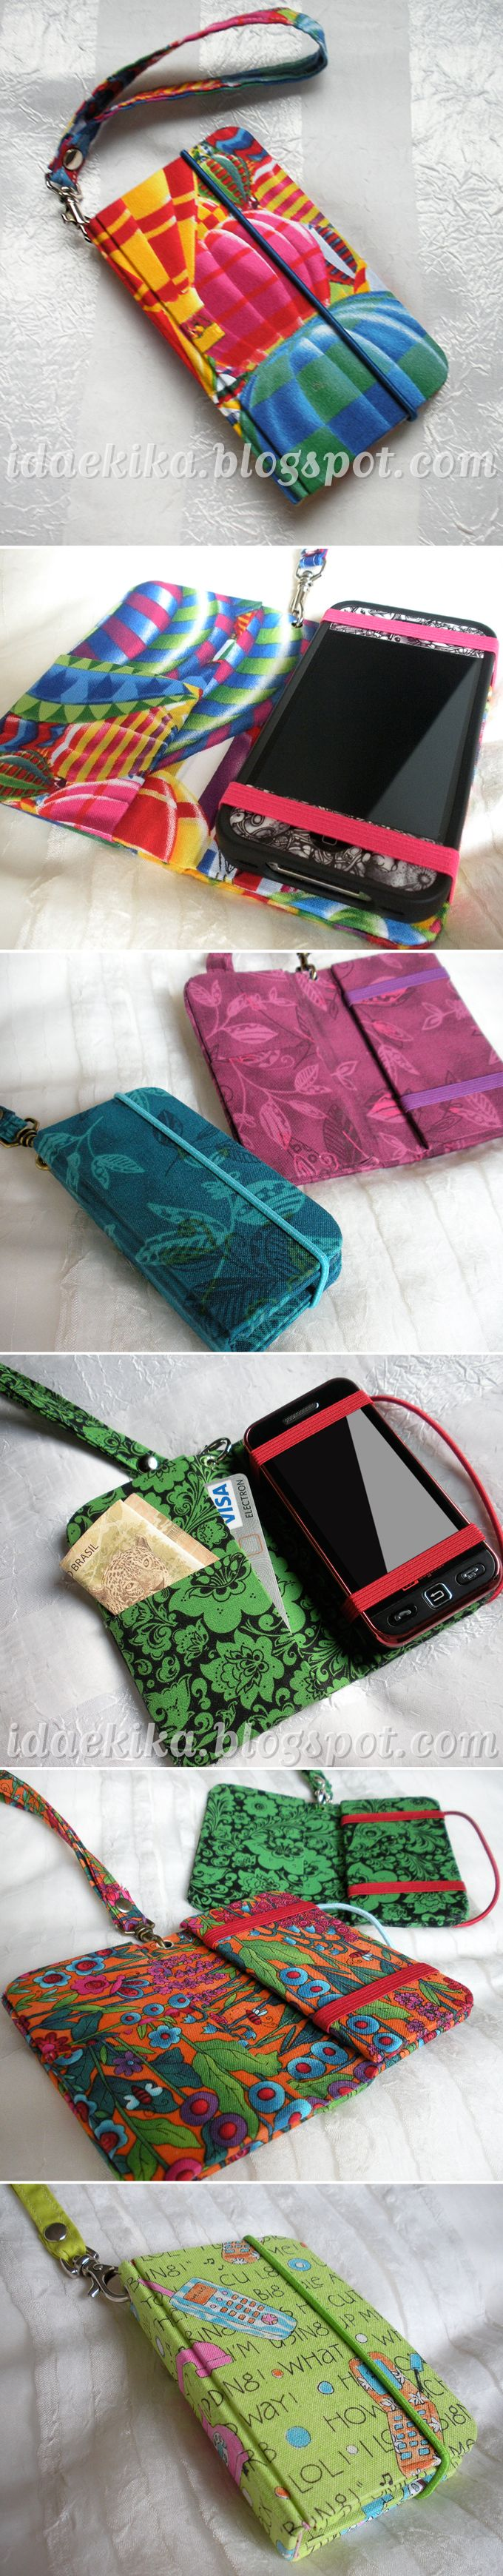 Cell Phone Cases - Cell Phone Cases - use firm interfacing. sandwich, creating raw edges. place 3rd md interfaced fabric on top, rs together, to enclose raw edges create lining. dont forget pockets maybe zip for change? - Welcome to the Cell Phone Cases Store, where youll find great prices on a wide range of different cases for your cell phone (IPhone - Samsung) - Welcome to the Cell Phone Cases Store, where you'll find great prices on a wide range of different cases for your cell phon...